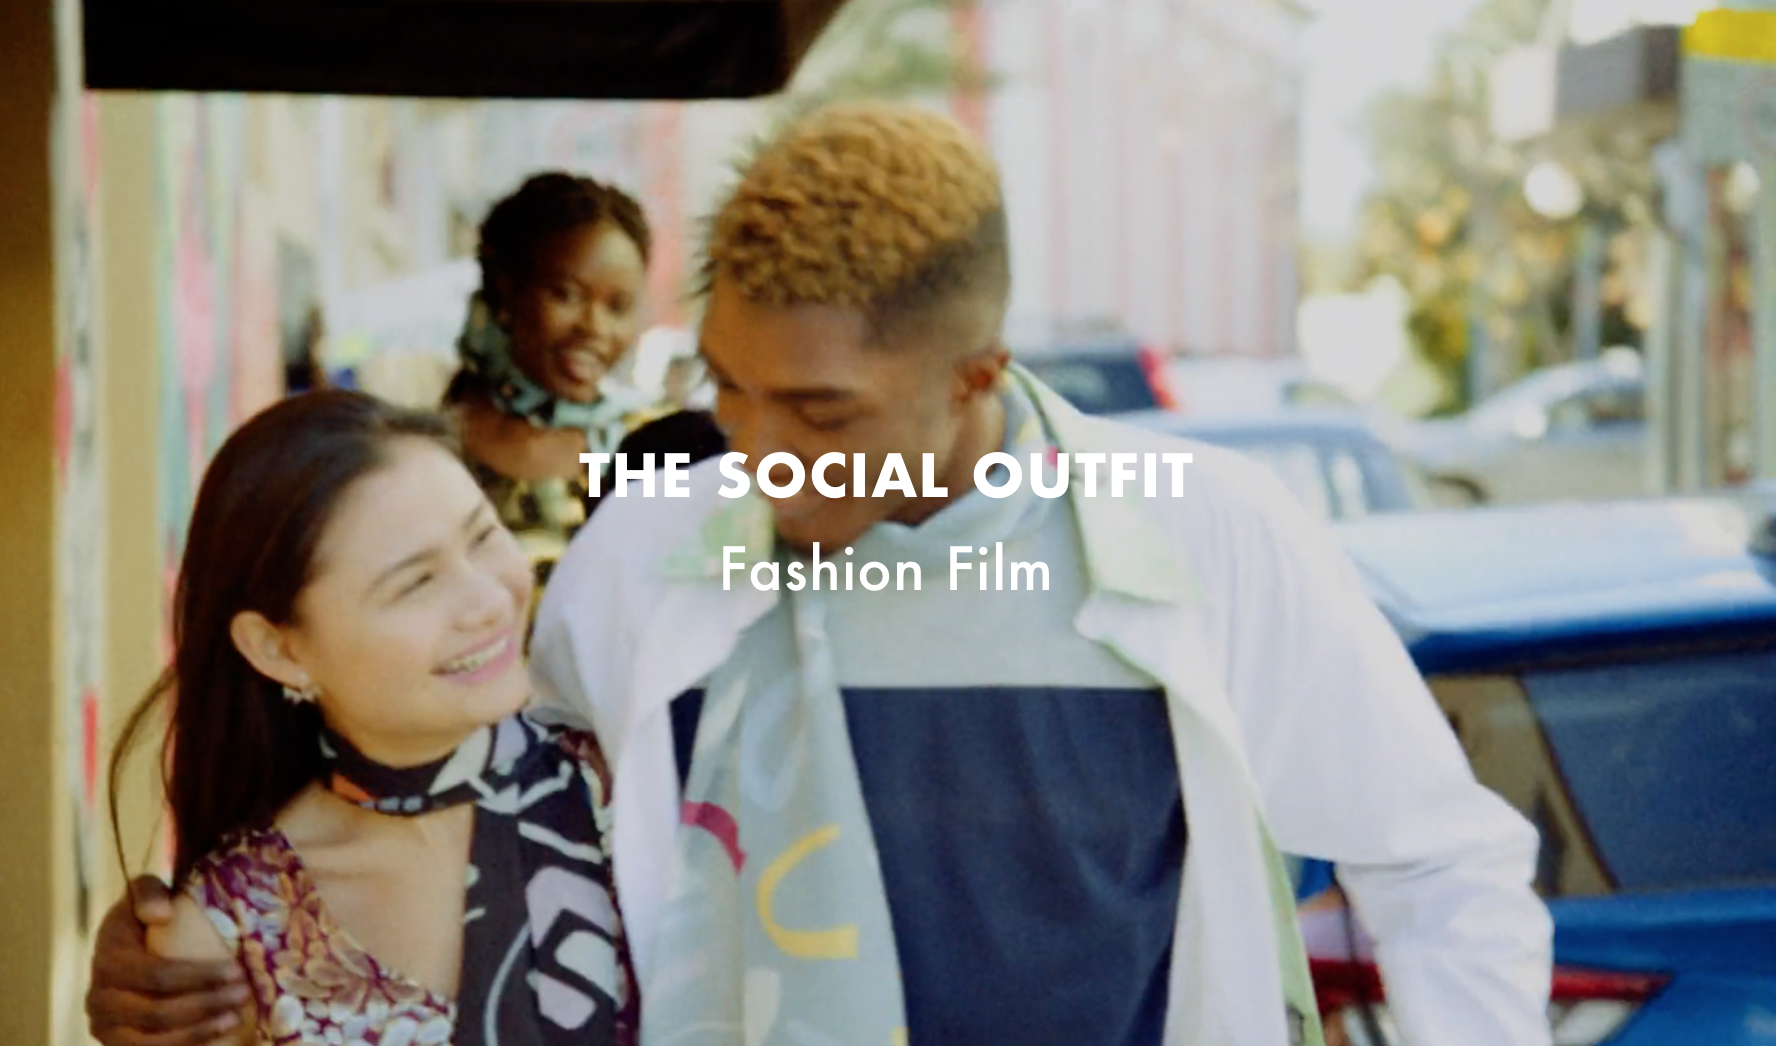 The Social Outfit World